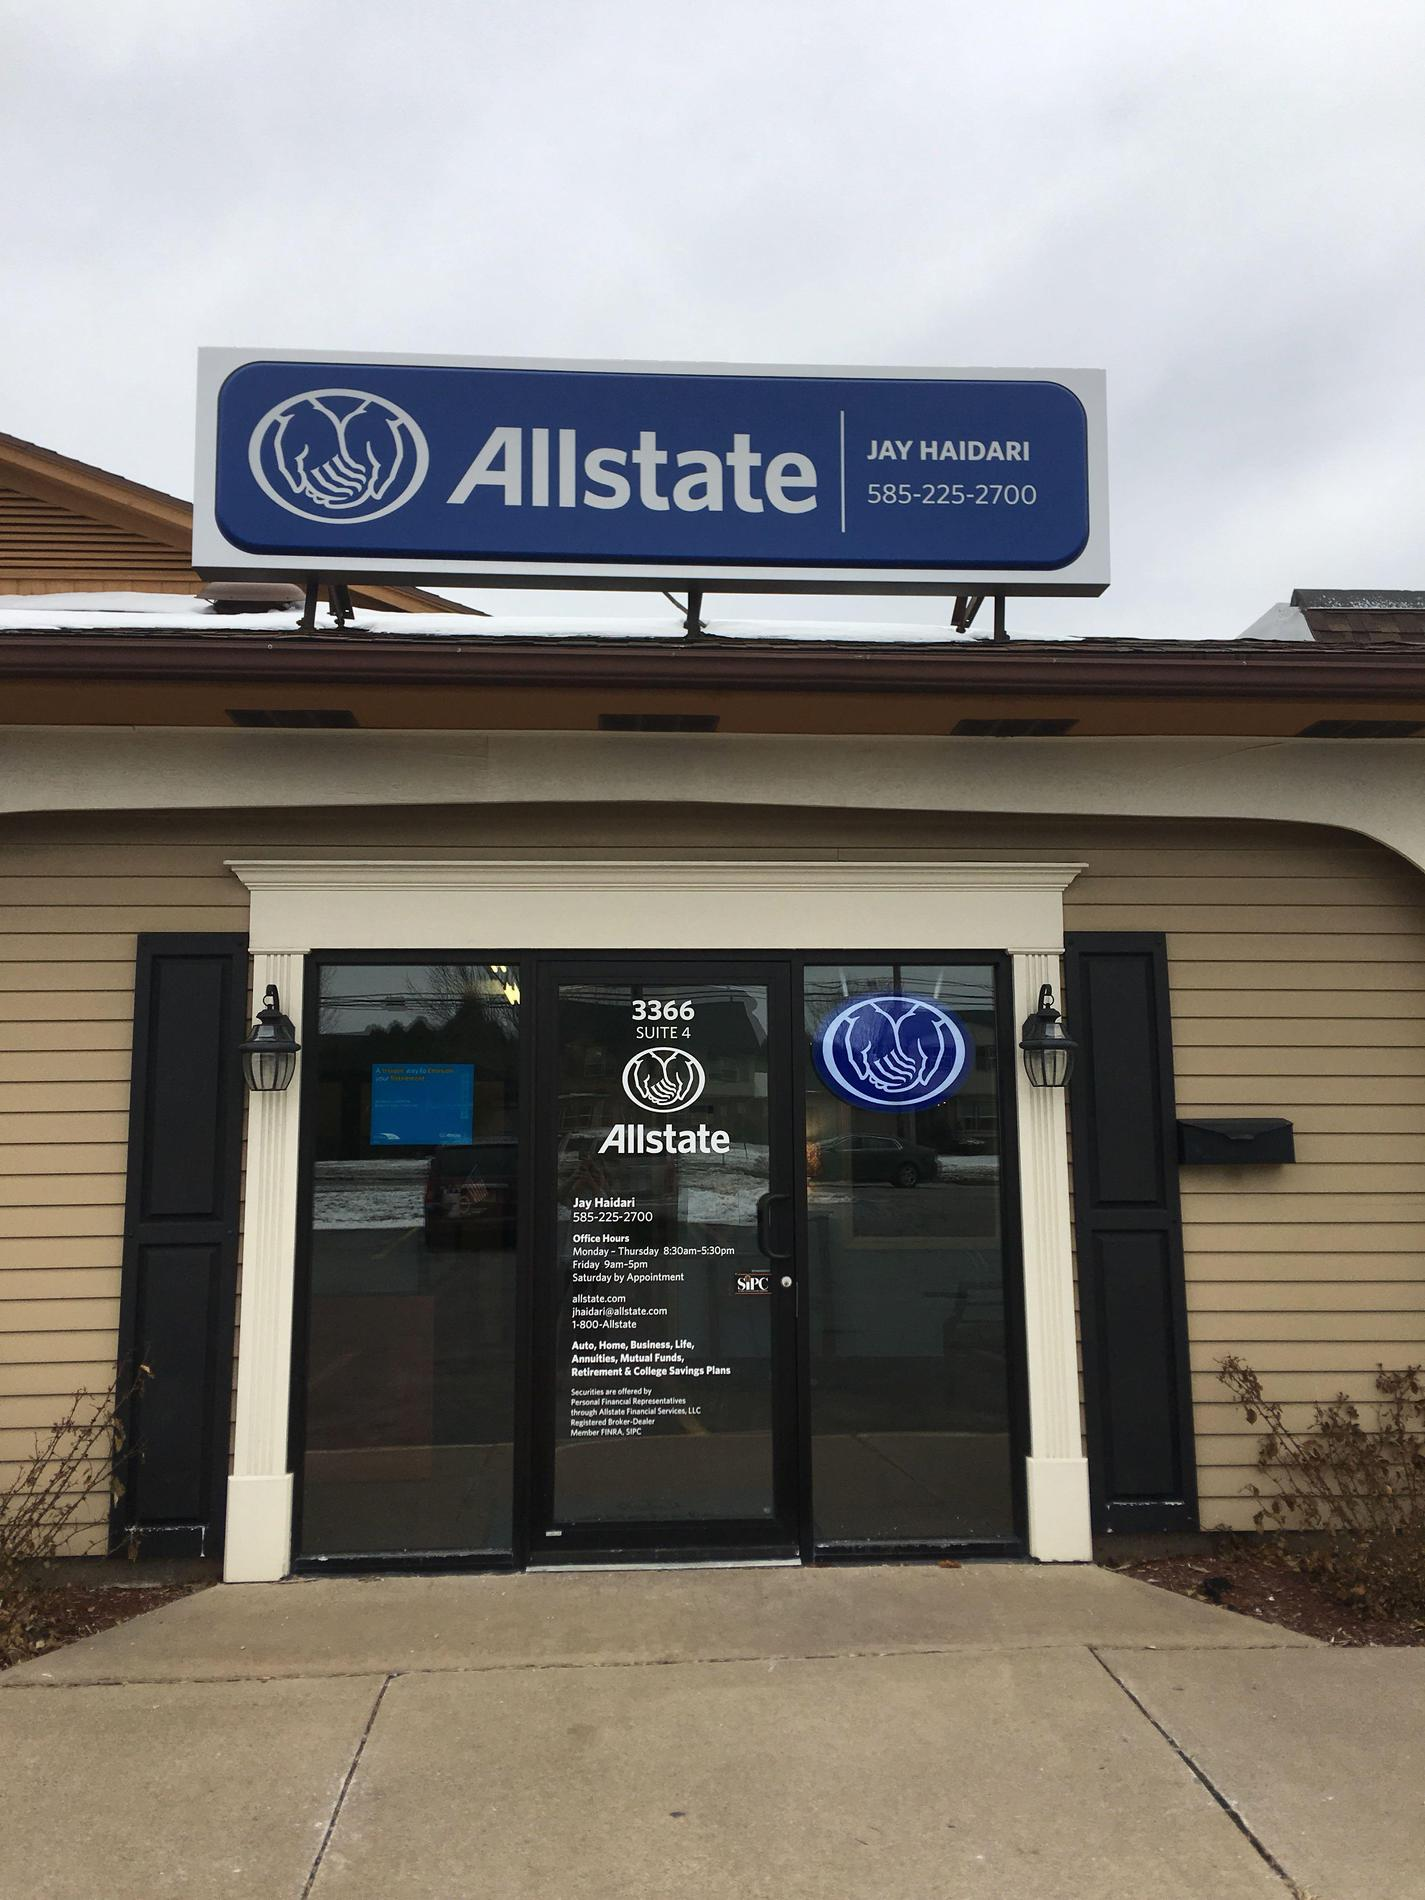 Allstate | Car Insurance in Rochester, NY - Jessica Guay